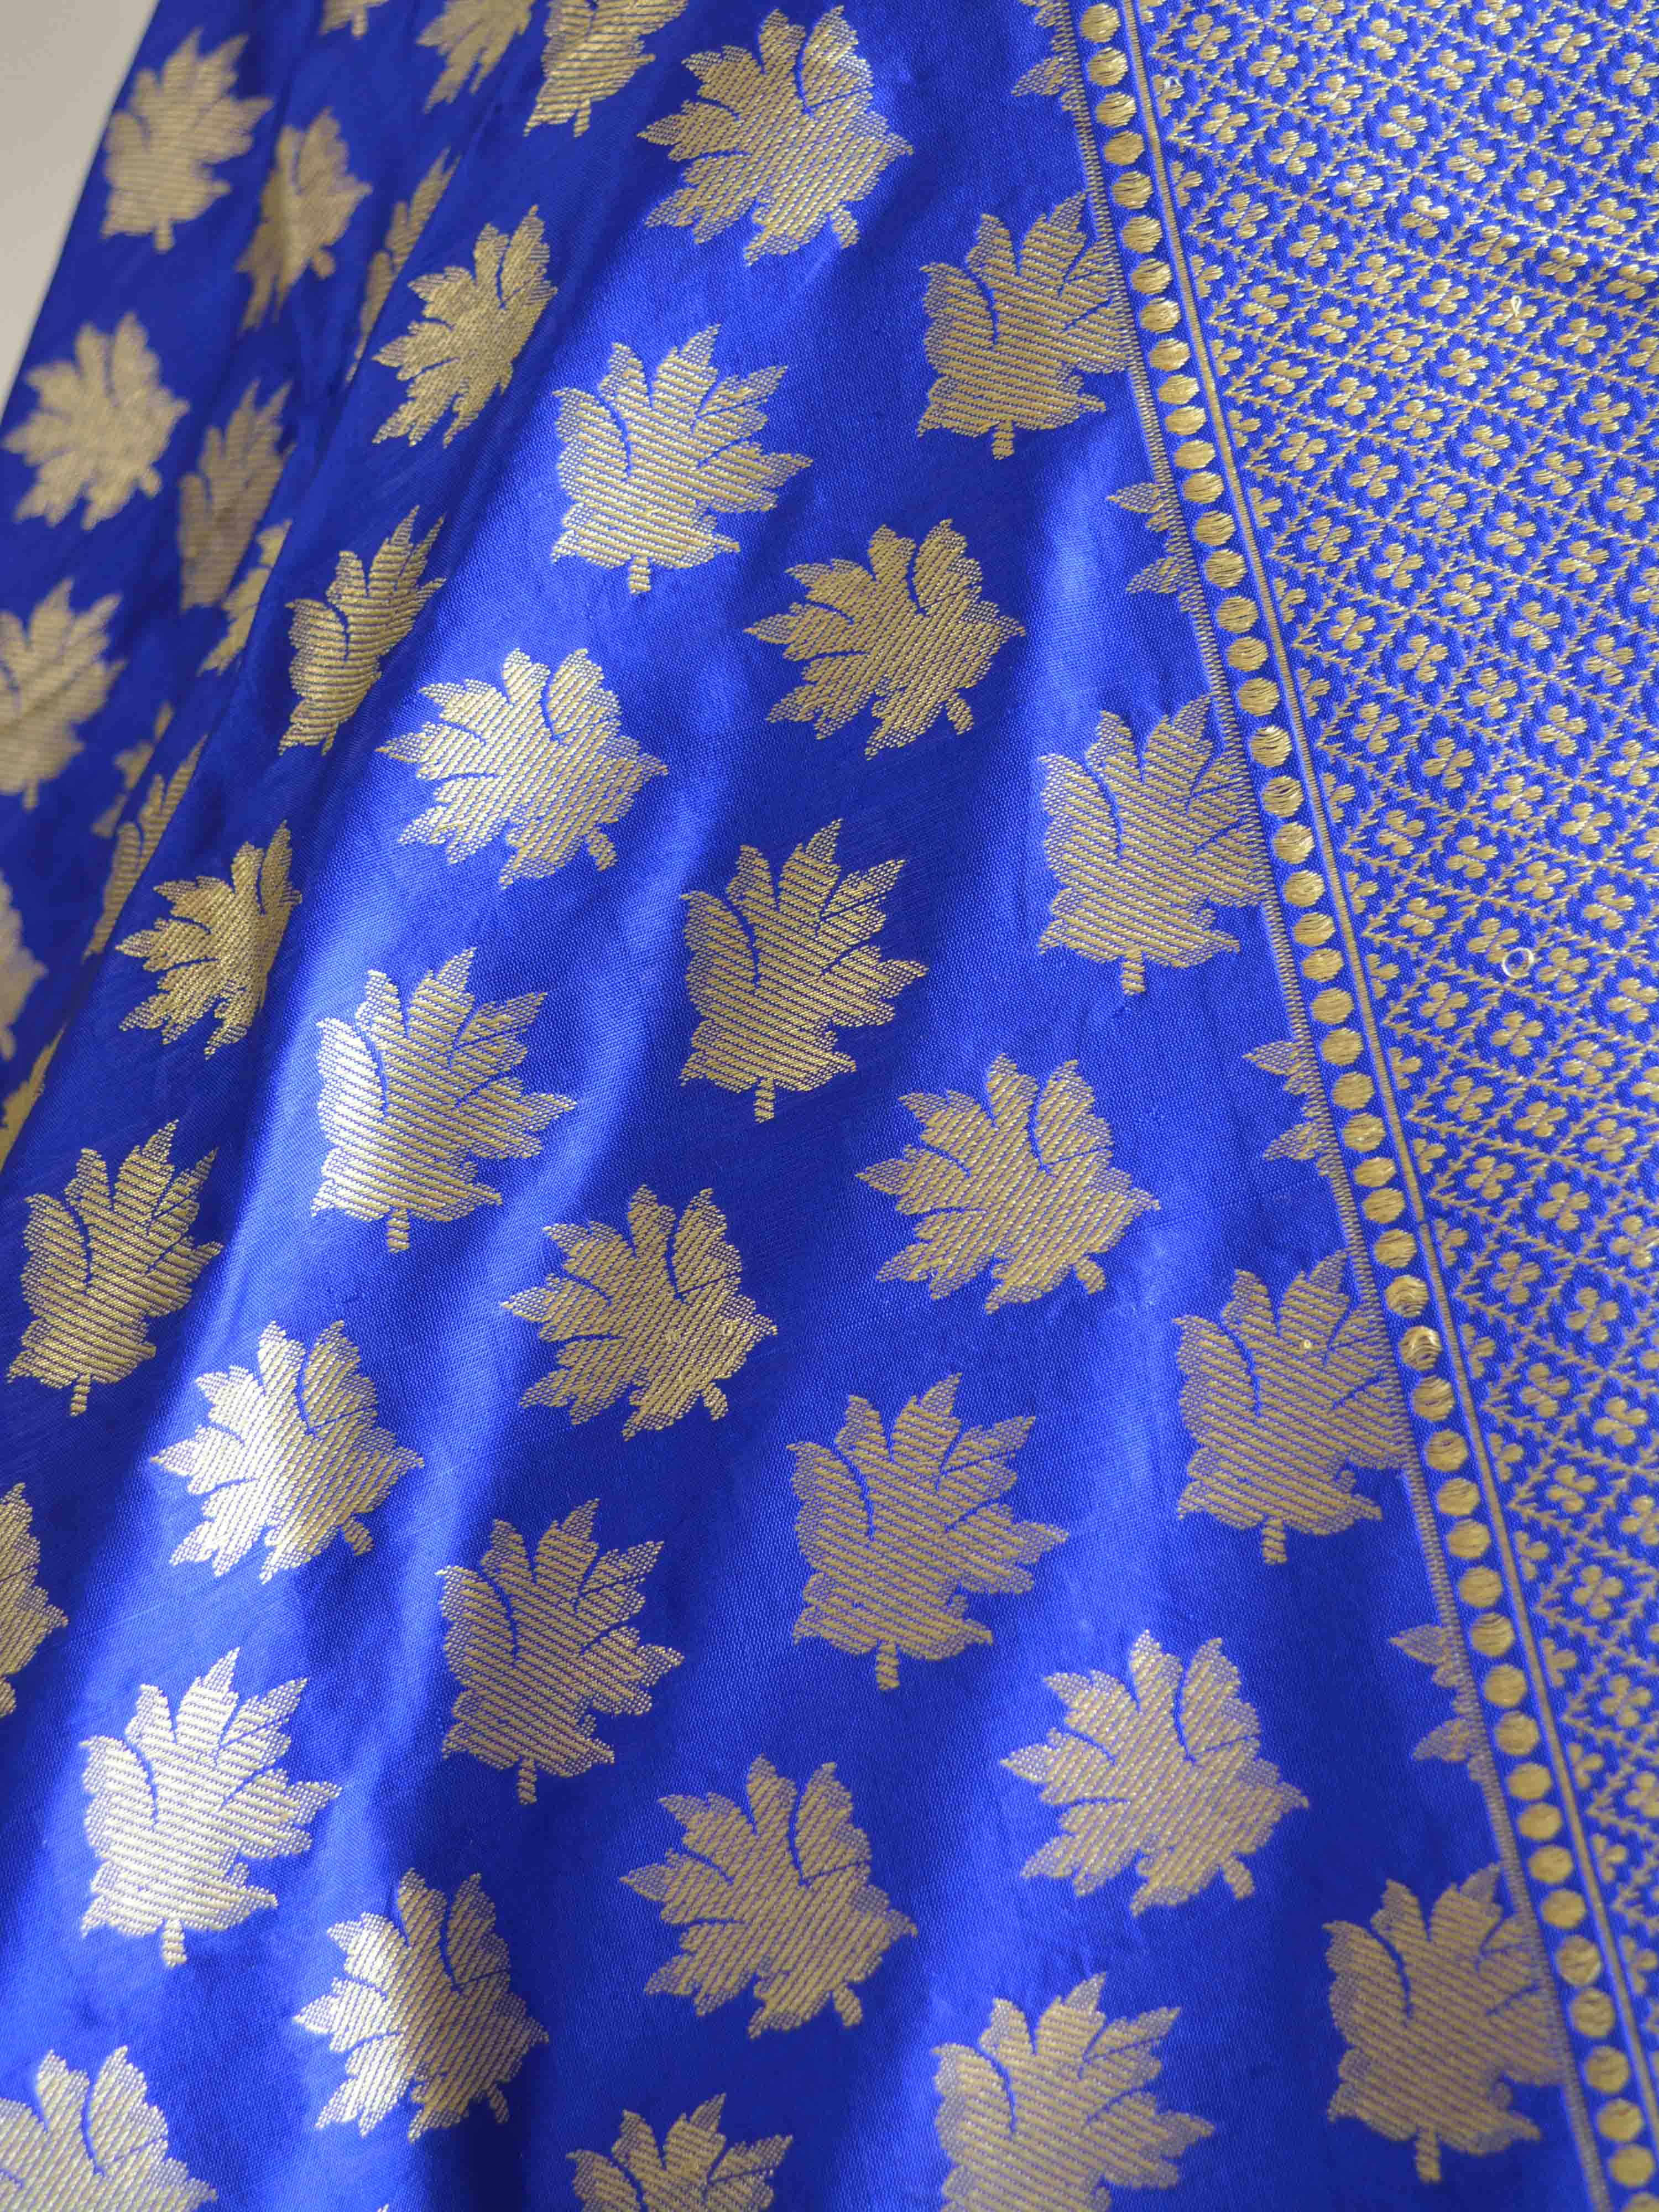 Banarasee Handwoven Pure Katan Silk Dupatta With Leaf Buti Design-Blue